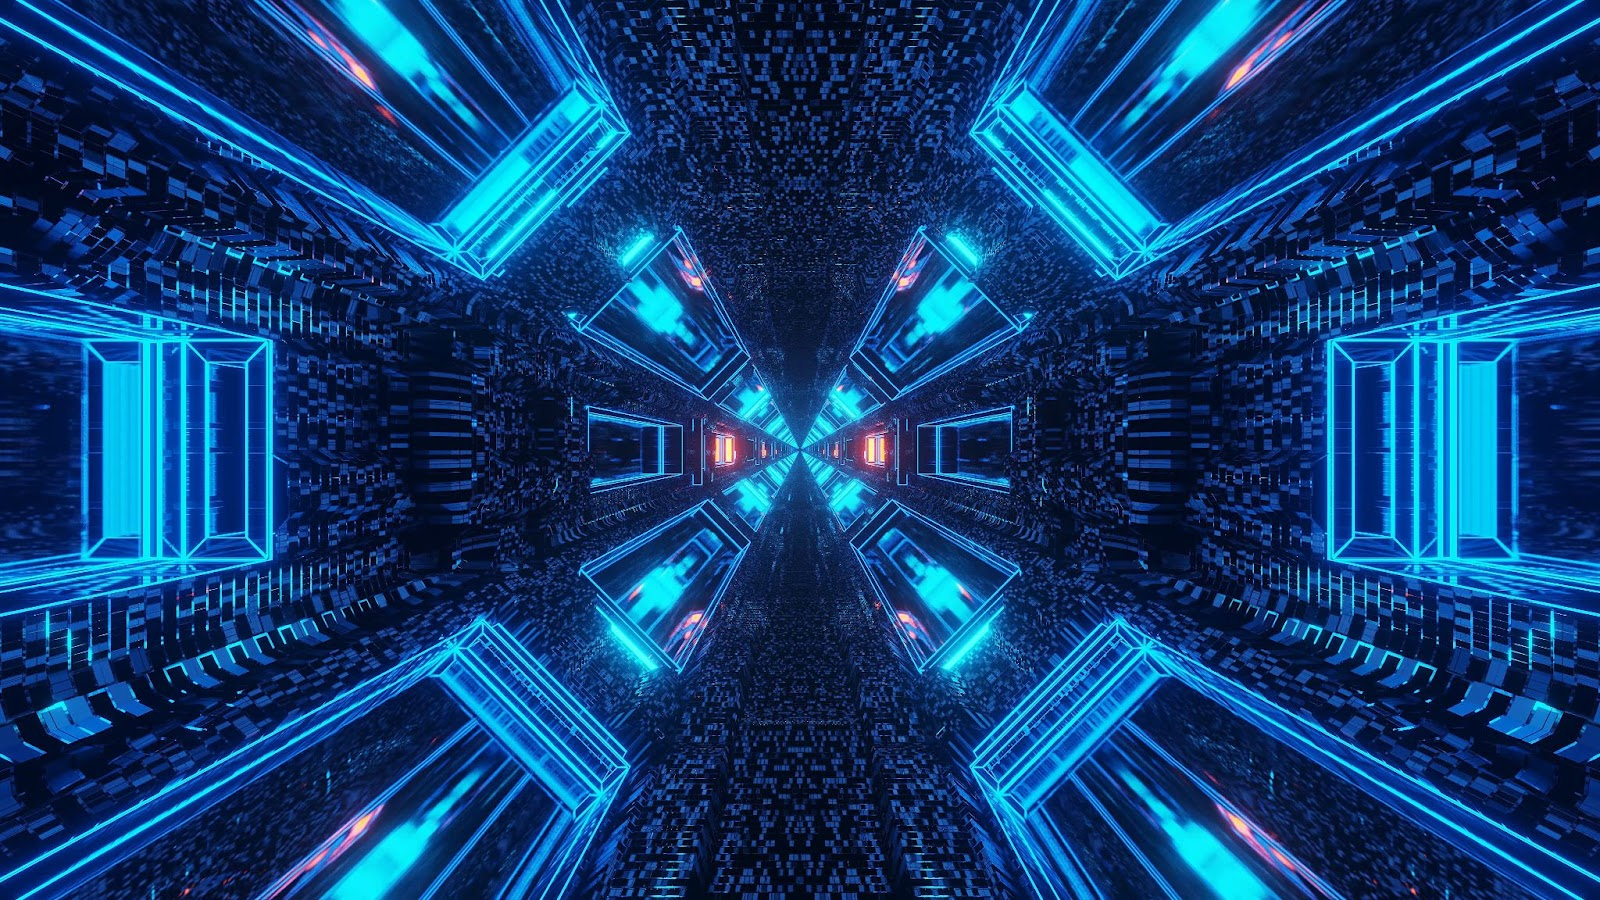 data tunnel with blue neon lights